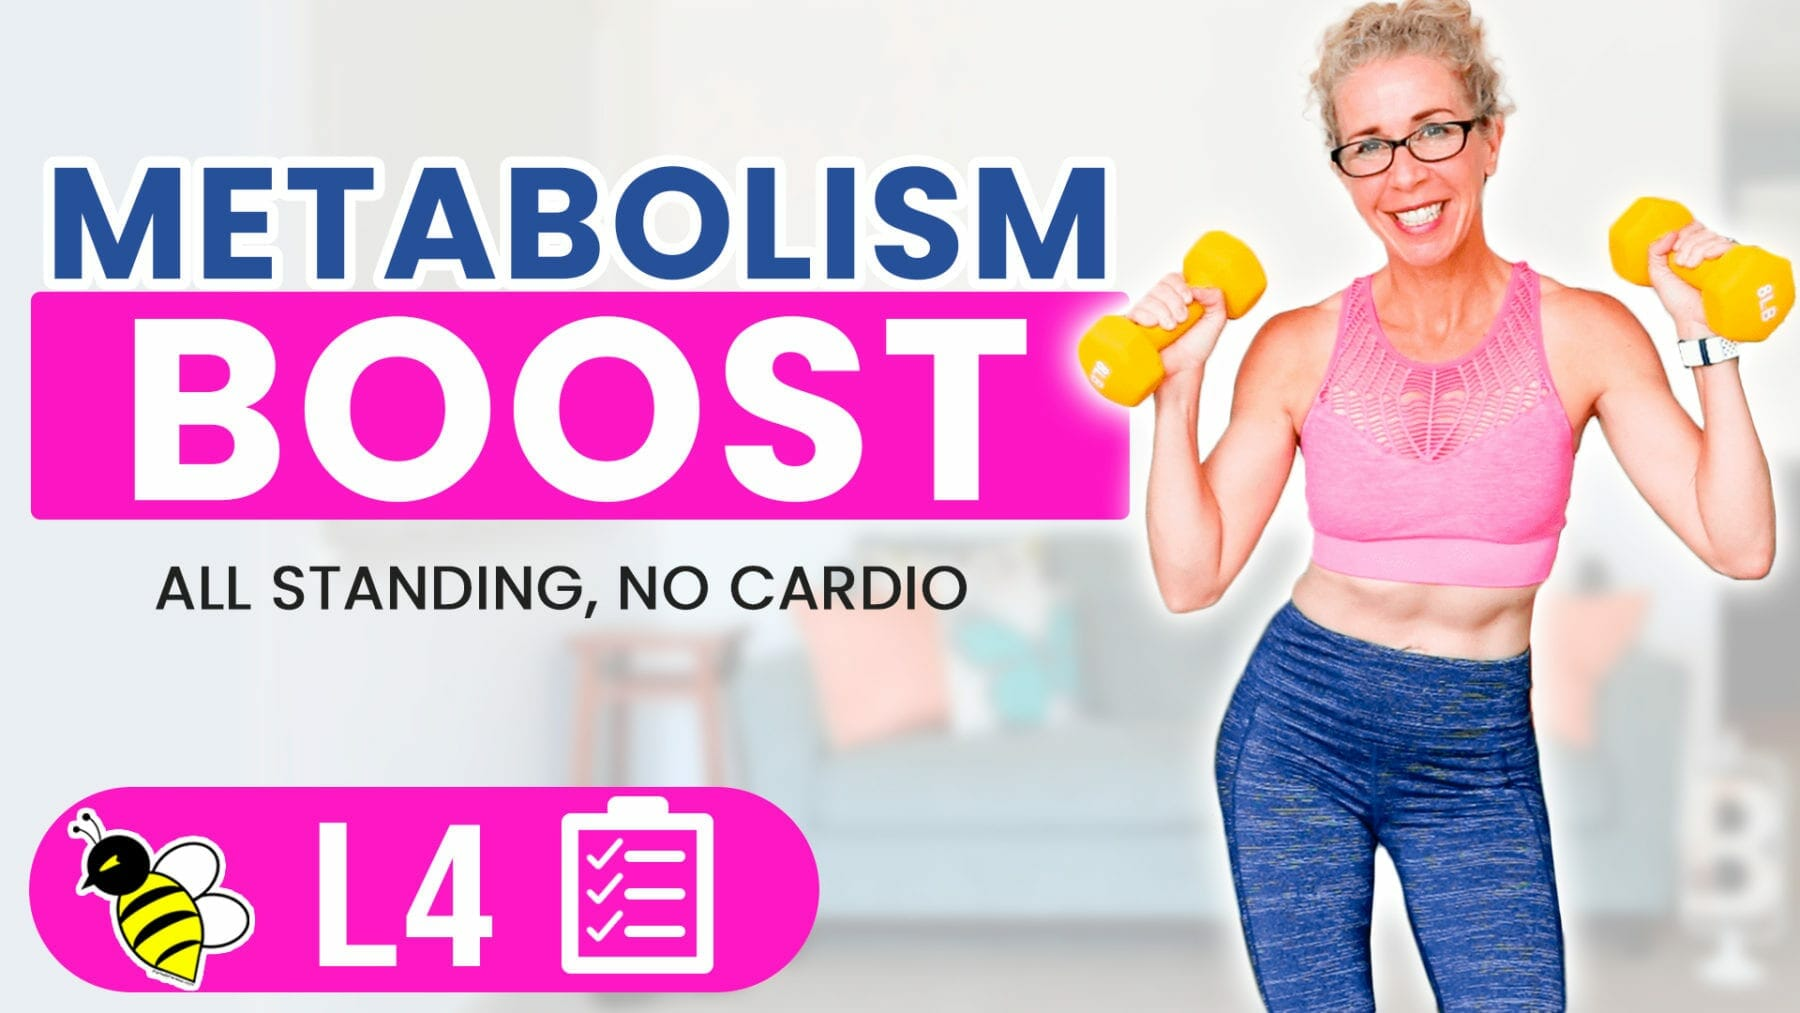 Metabolism Boost in Menopause 30 Minute STRENGTH TRAINING Workout for Women over 50